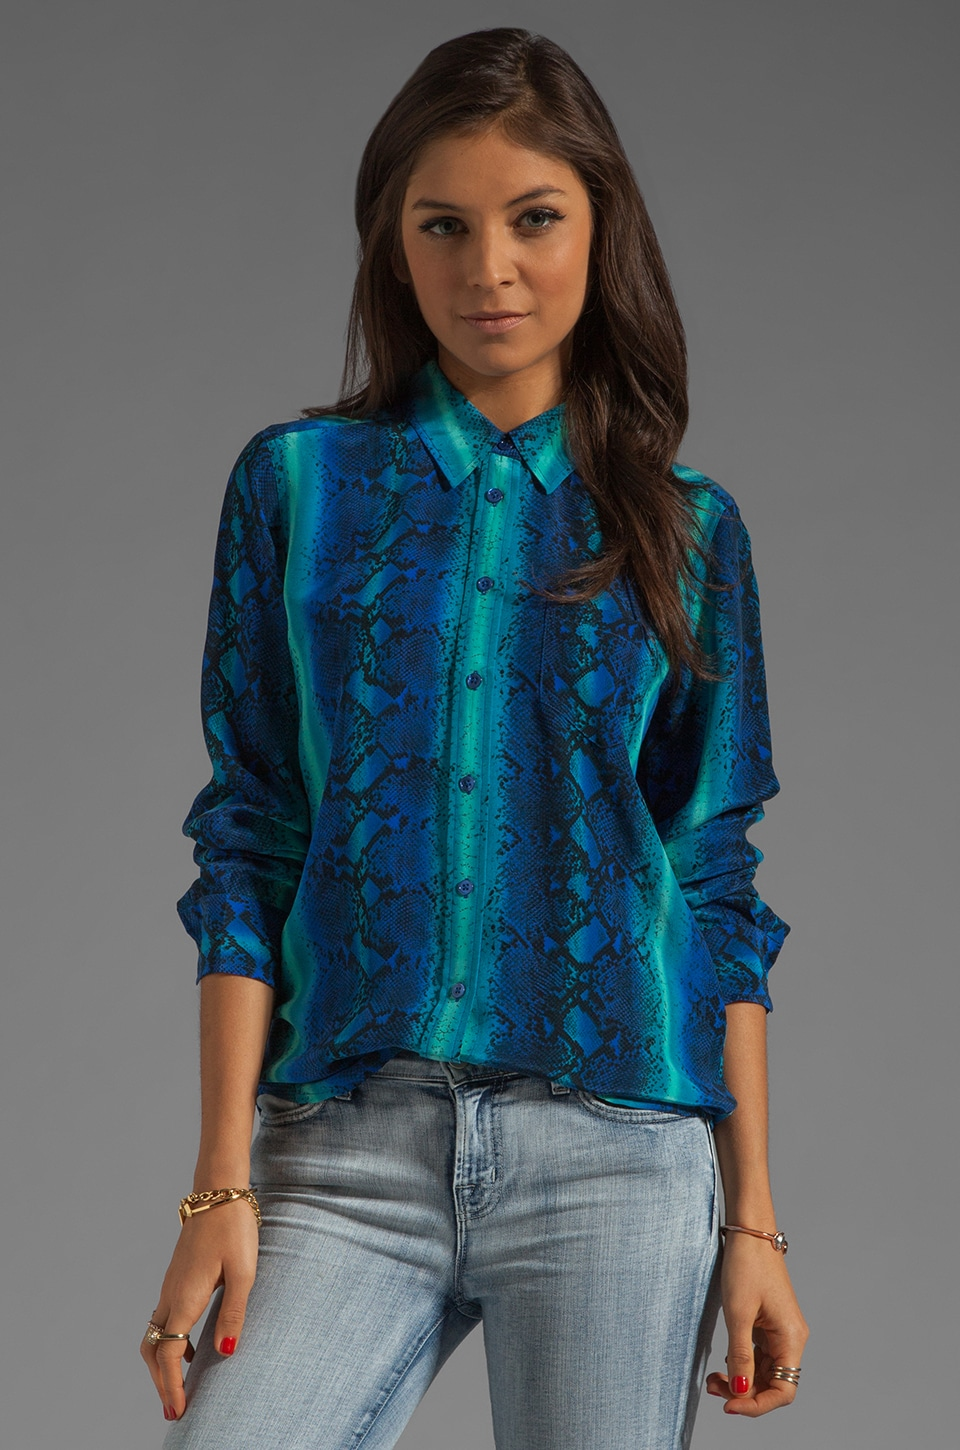 Equipment Brett Rainbow Diamondback Printed Blouse in Regal Blue Multi